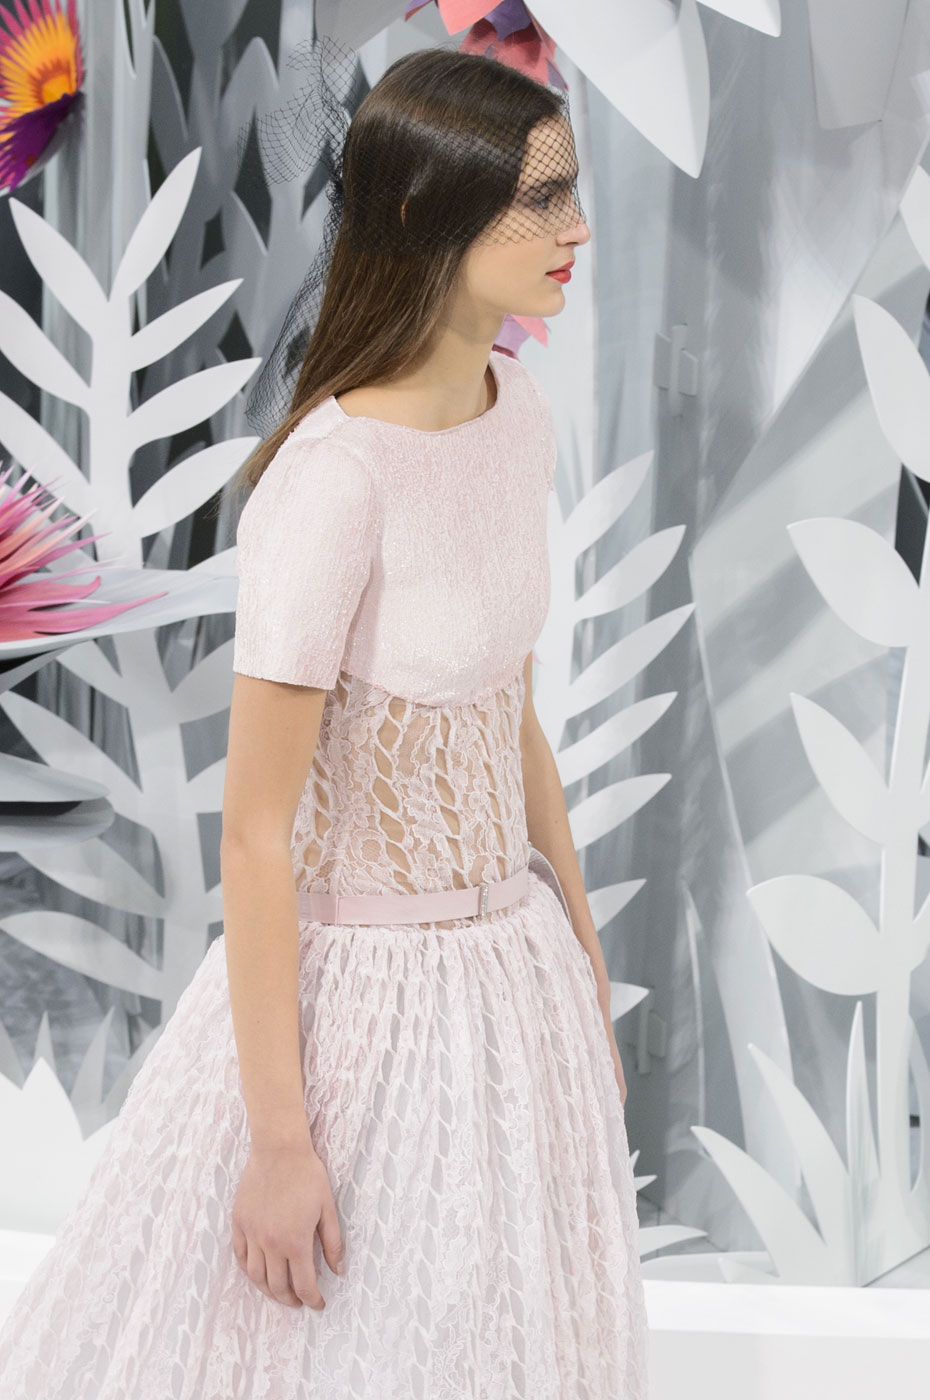 Chanel-fashion-runway-show-haute-couture-paris-spring-summer-2015-the-impression-144